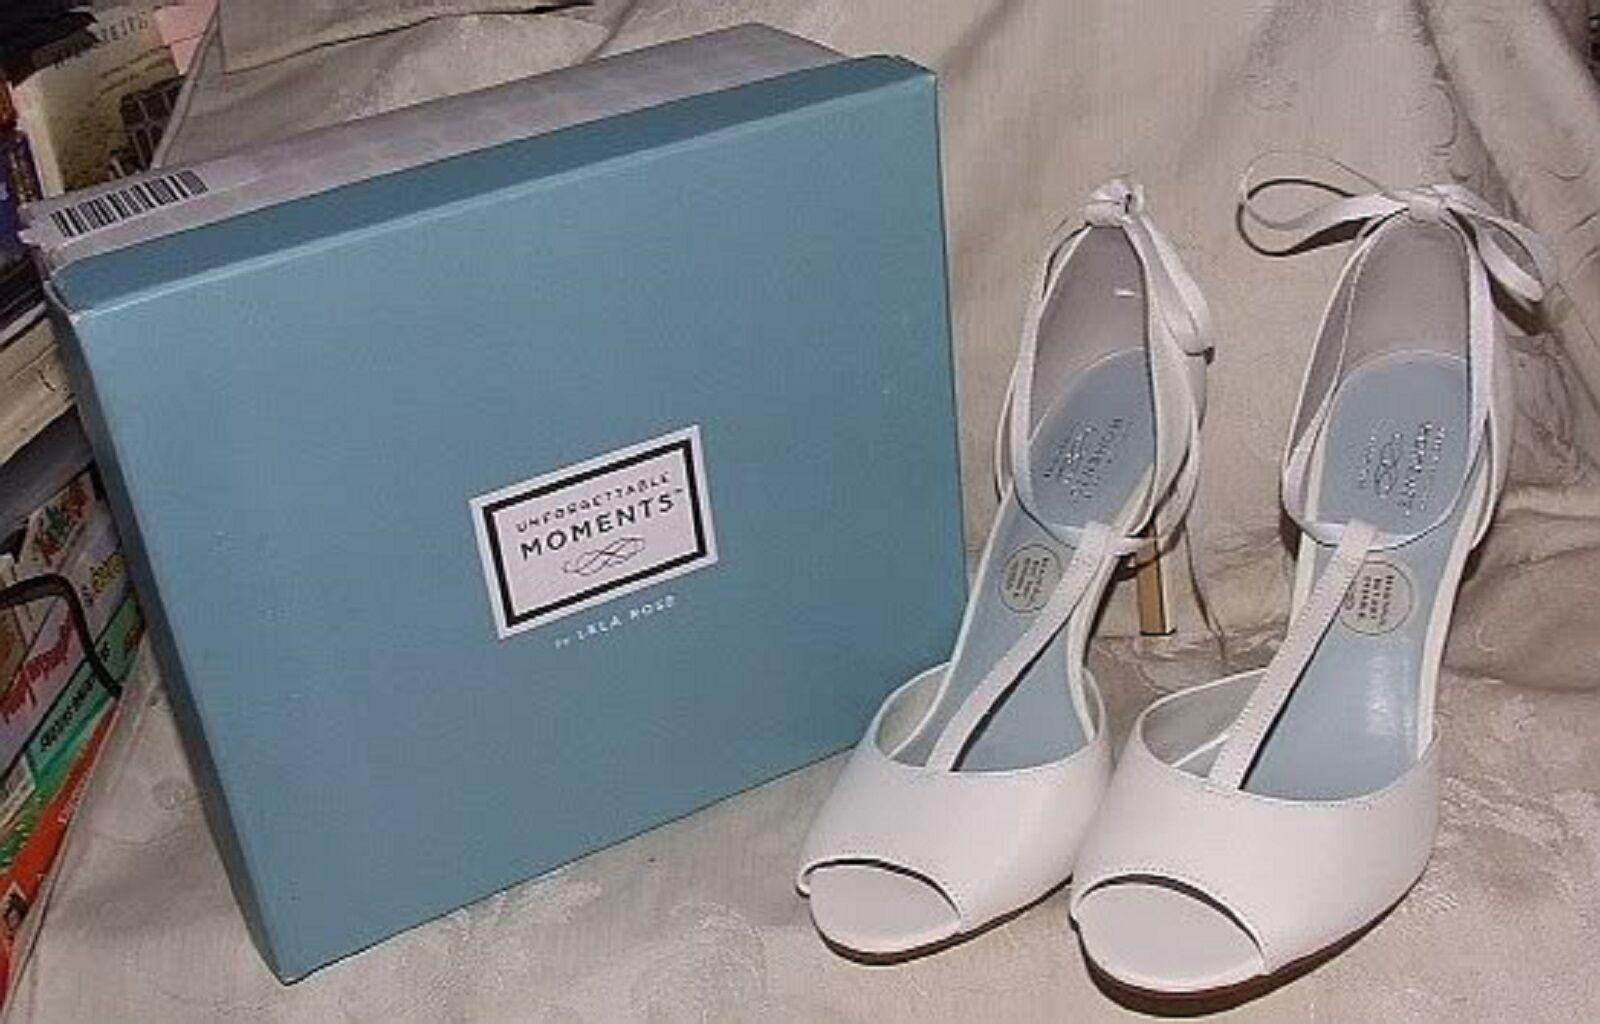 Lela Rose T-Strap Unforgettable Moments 7 DIANA WHITE T-Strap Rose Heels Bridal/Formal Shoes f95884